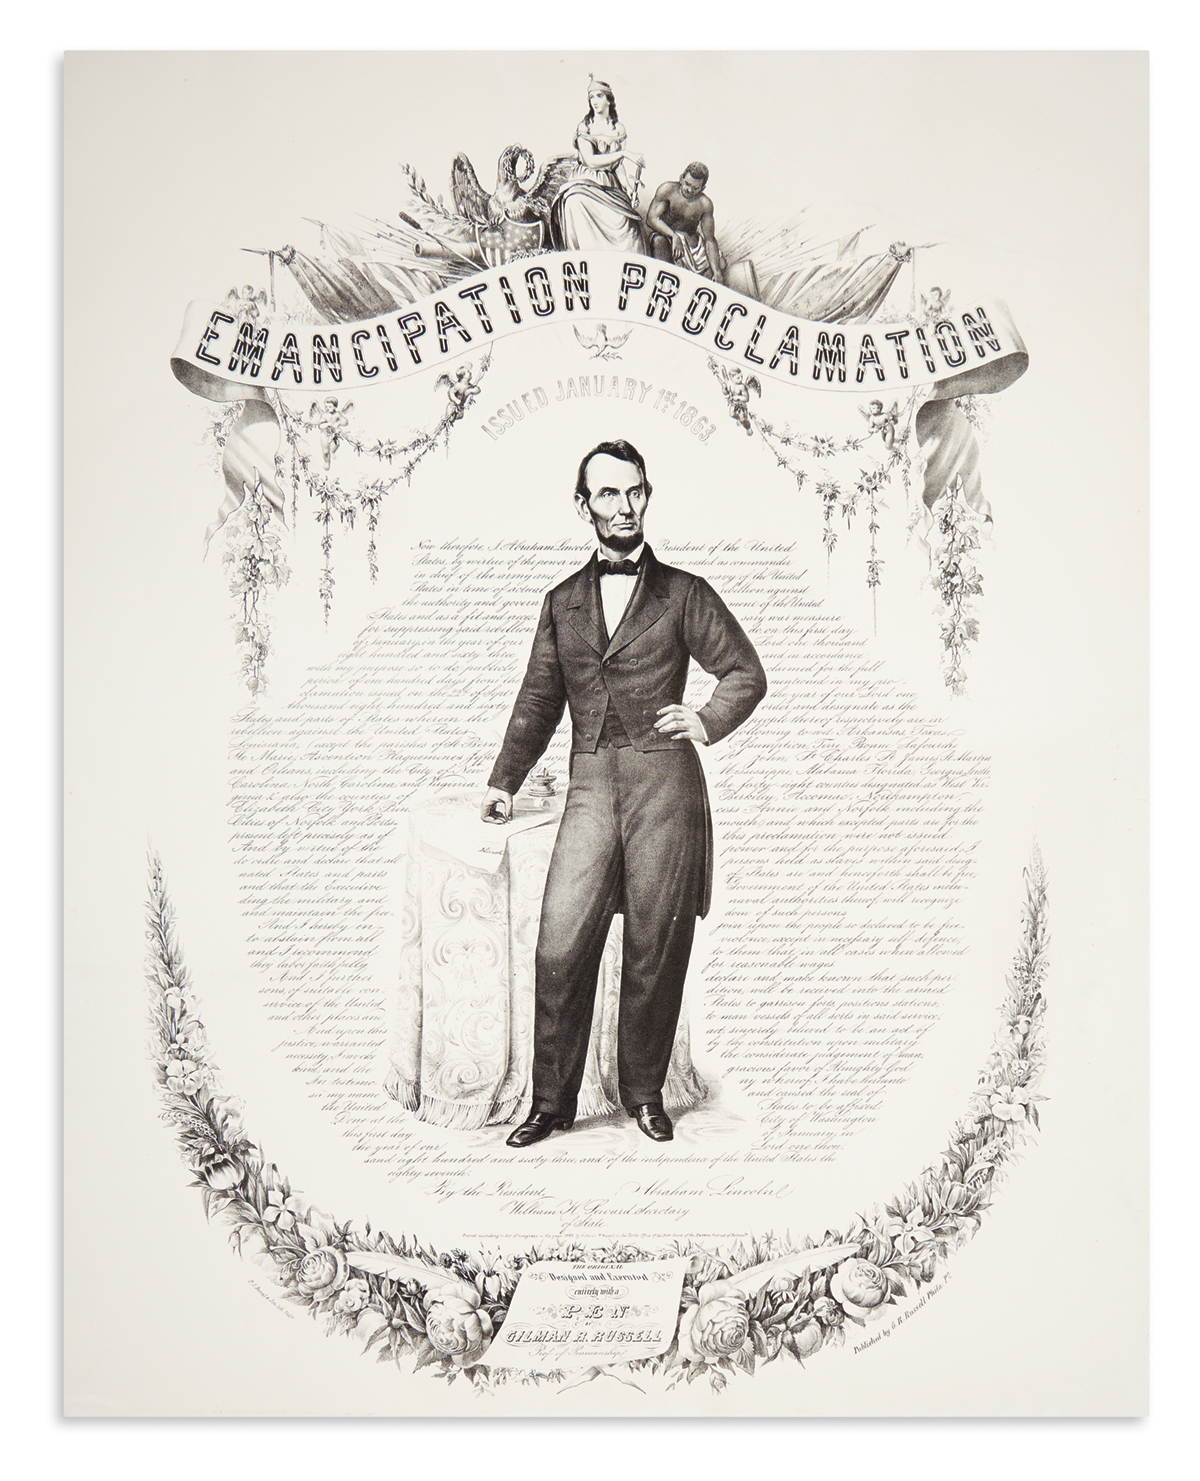 (SLAVERY AND ABOLITION.) Lincoln, Abraham. Emancipation Proclamation Issued January 1st 1863.